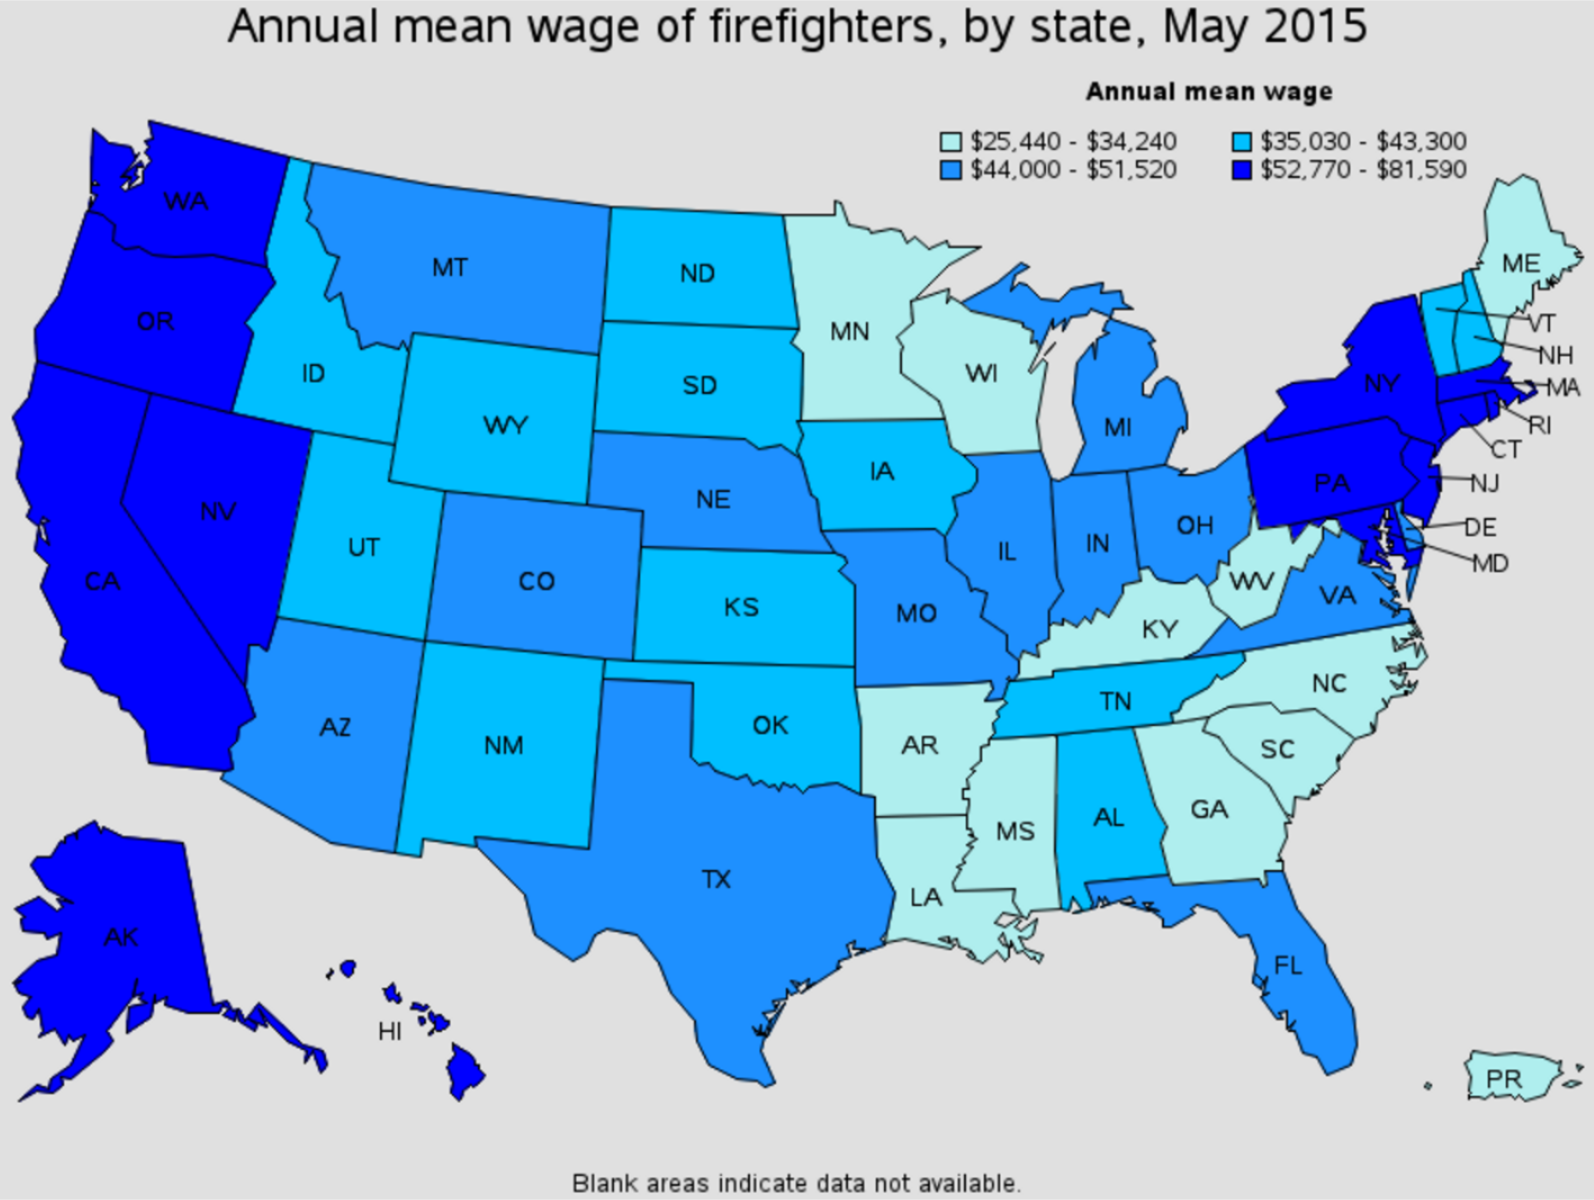 firefighter average salary by state Williamson West Virginia